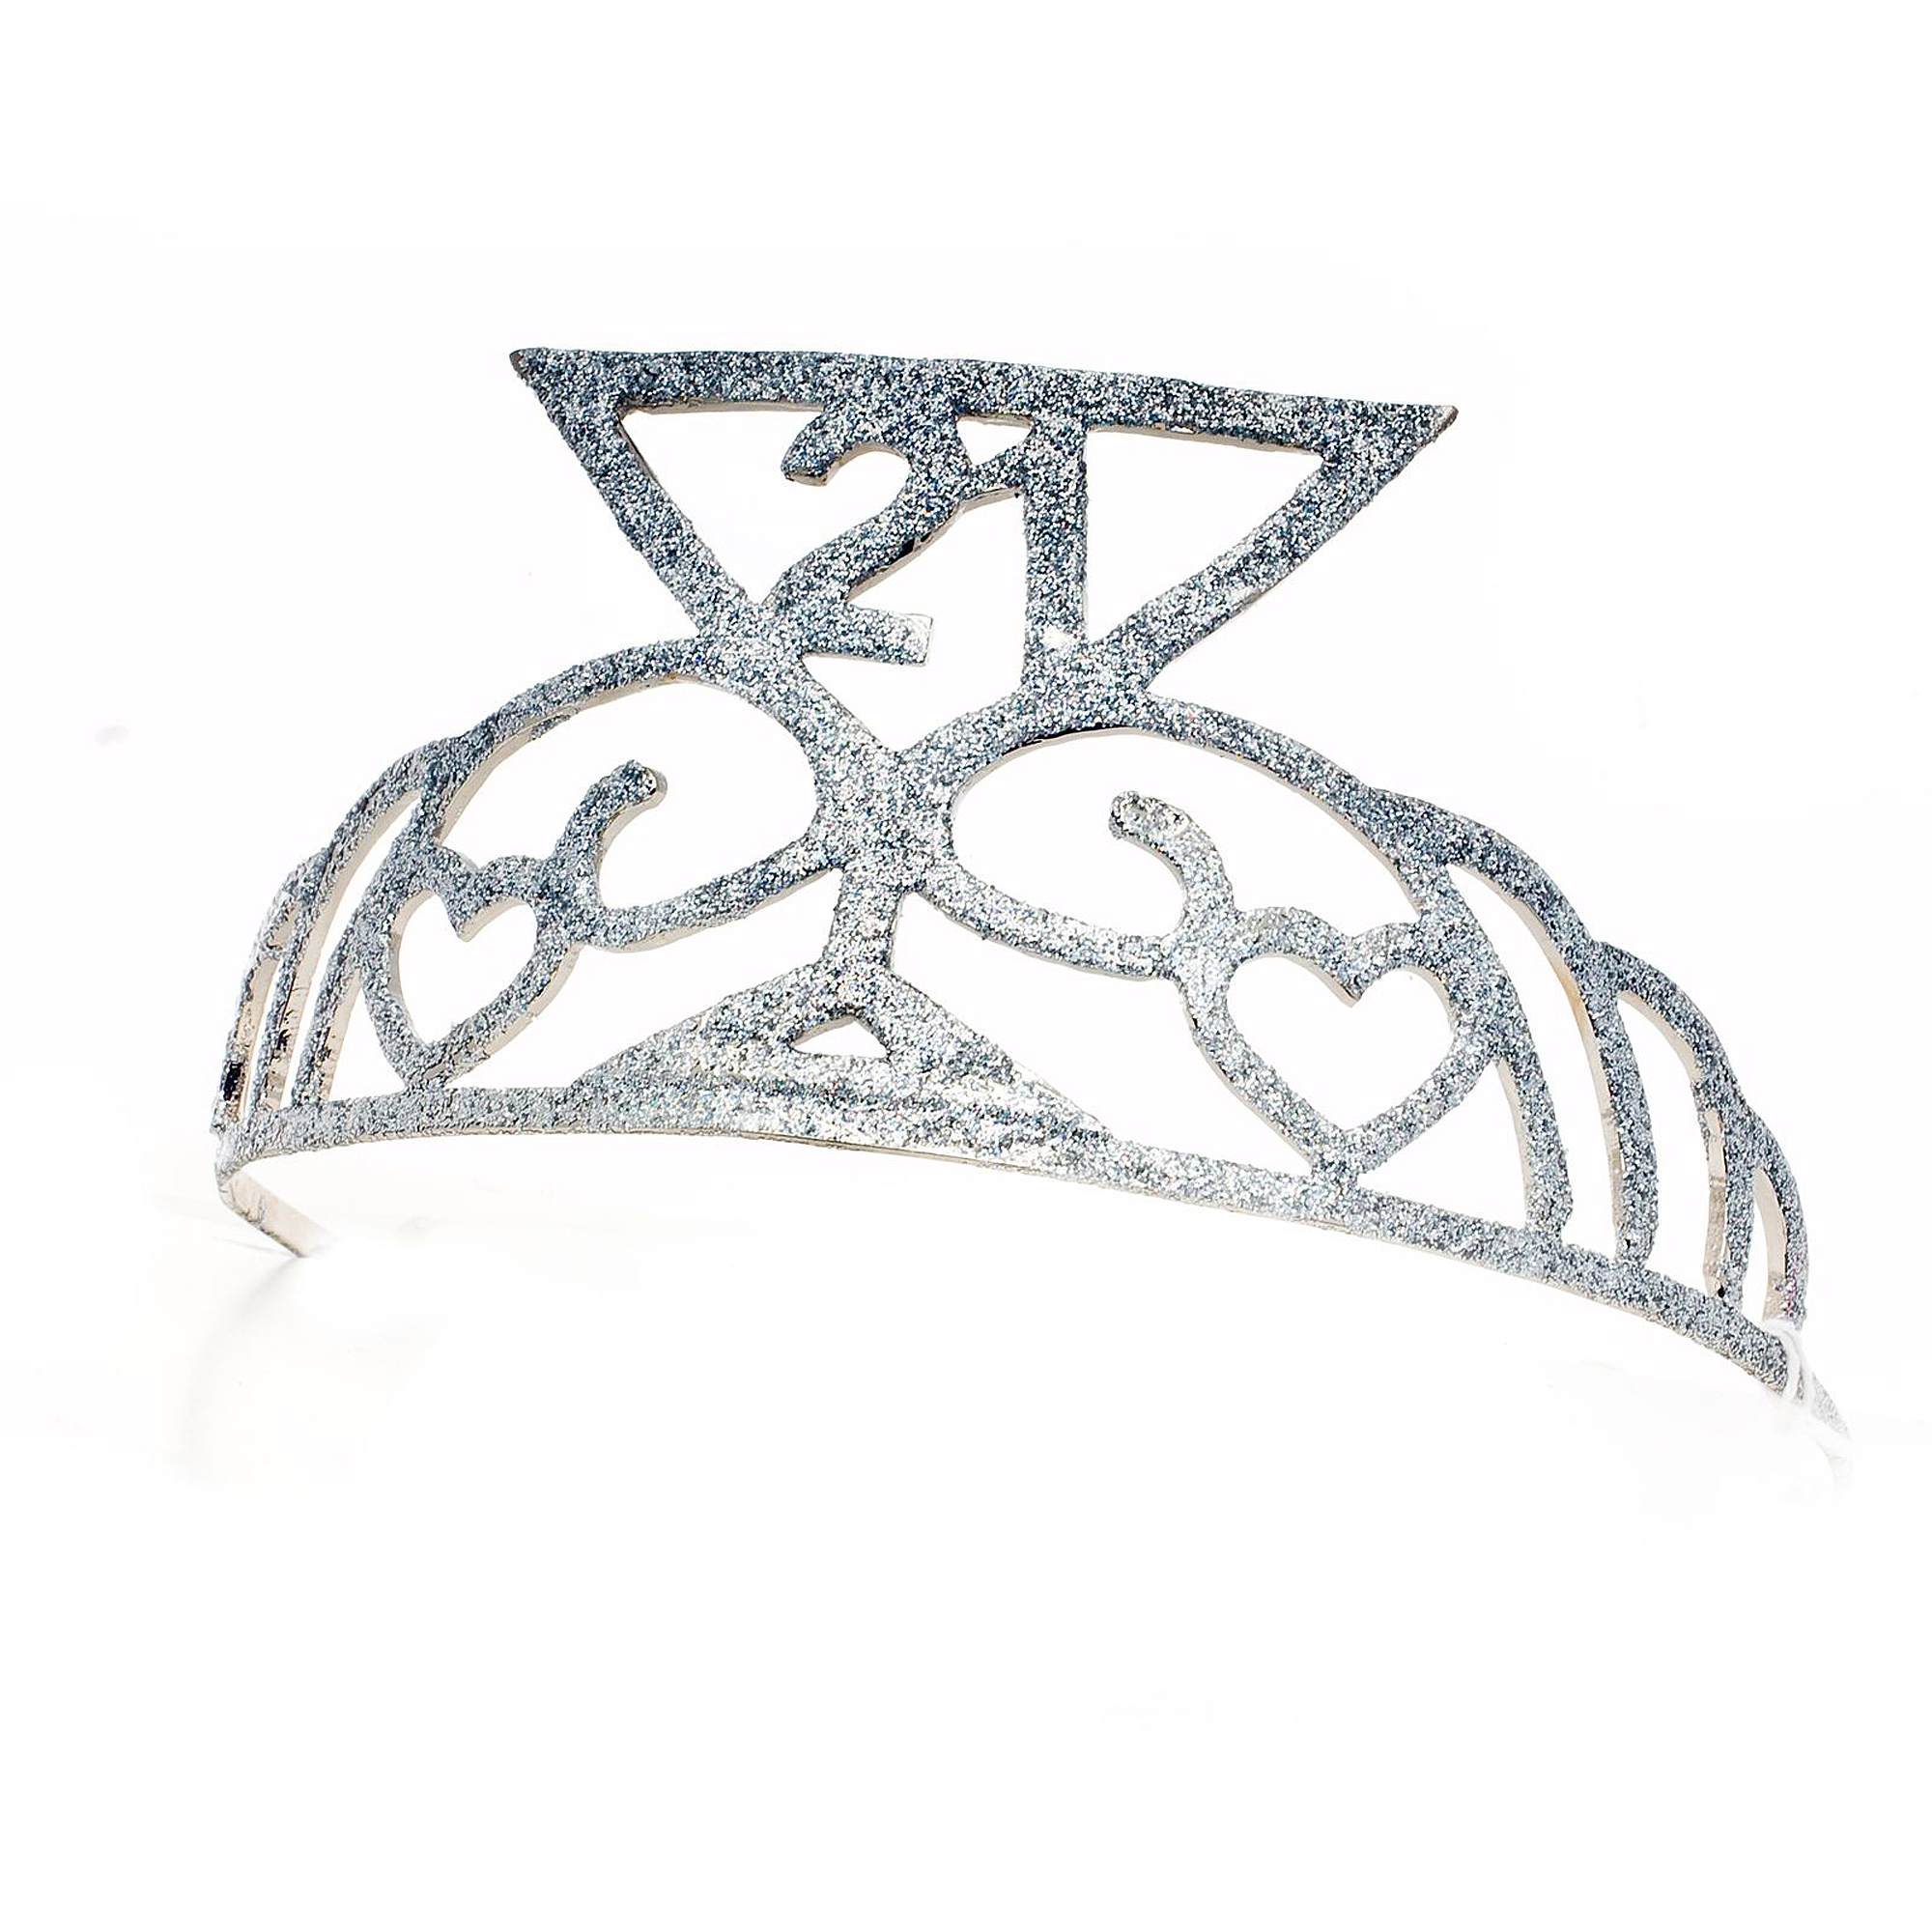 Sunnywood Cheers 21 Glitter Tiara Adult Costume Accessory